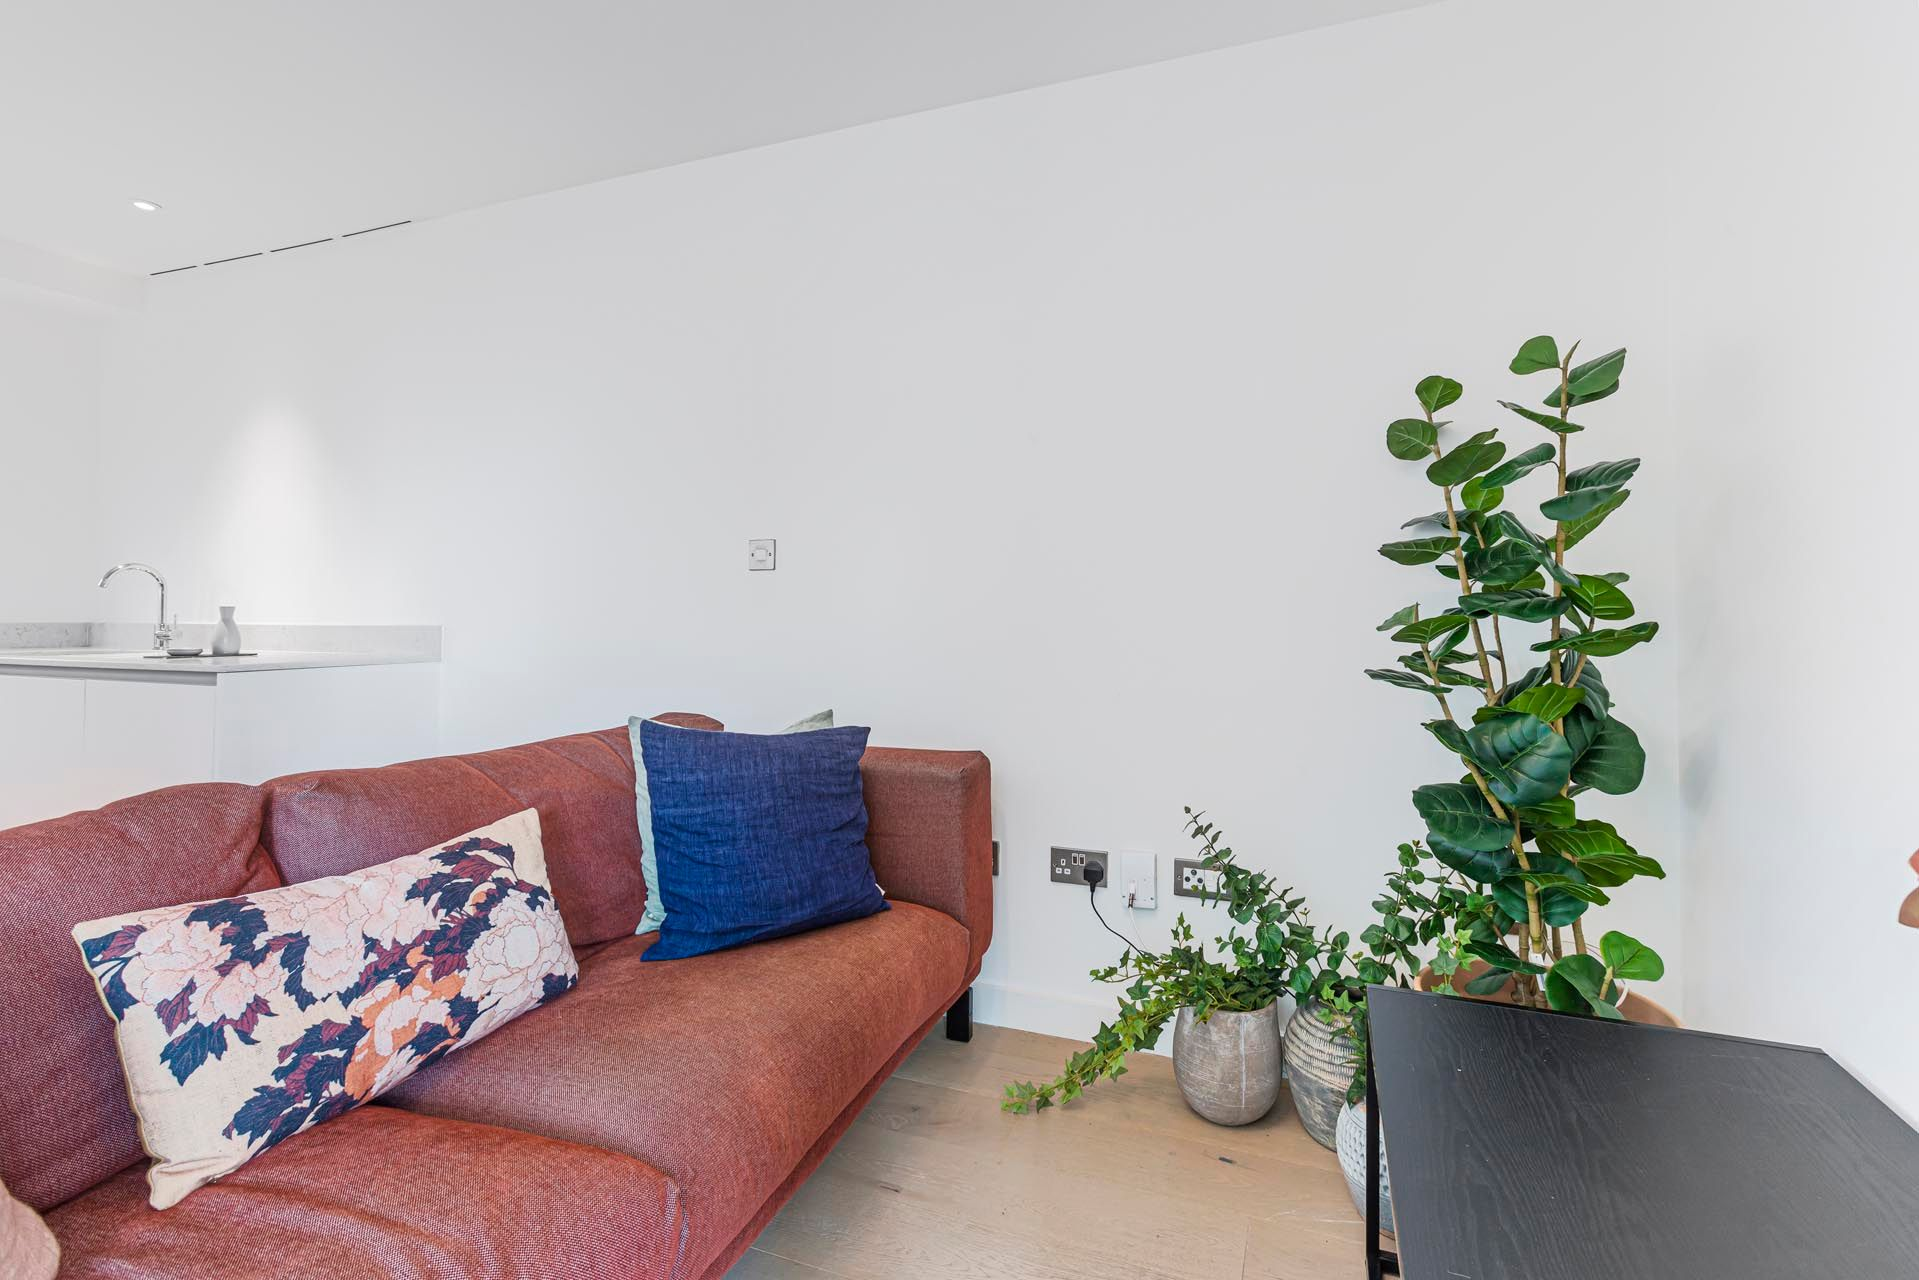 1 Bedroom apartment to rent in London HIL-HH-0225